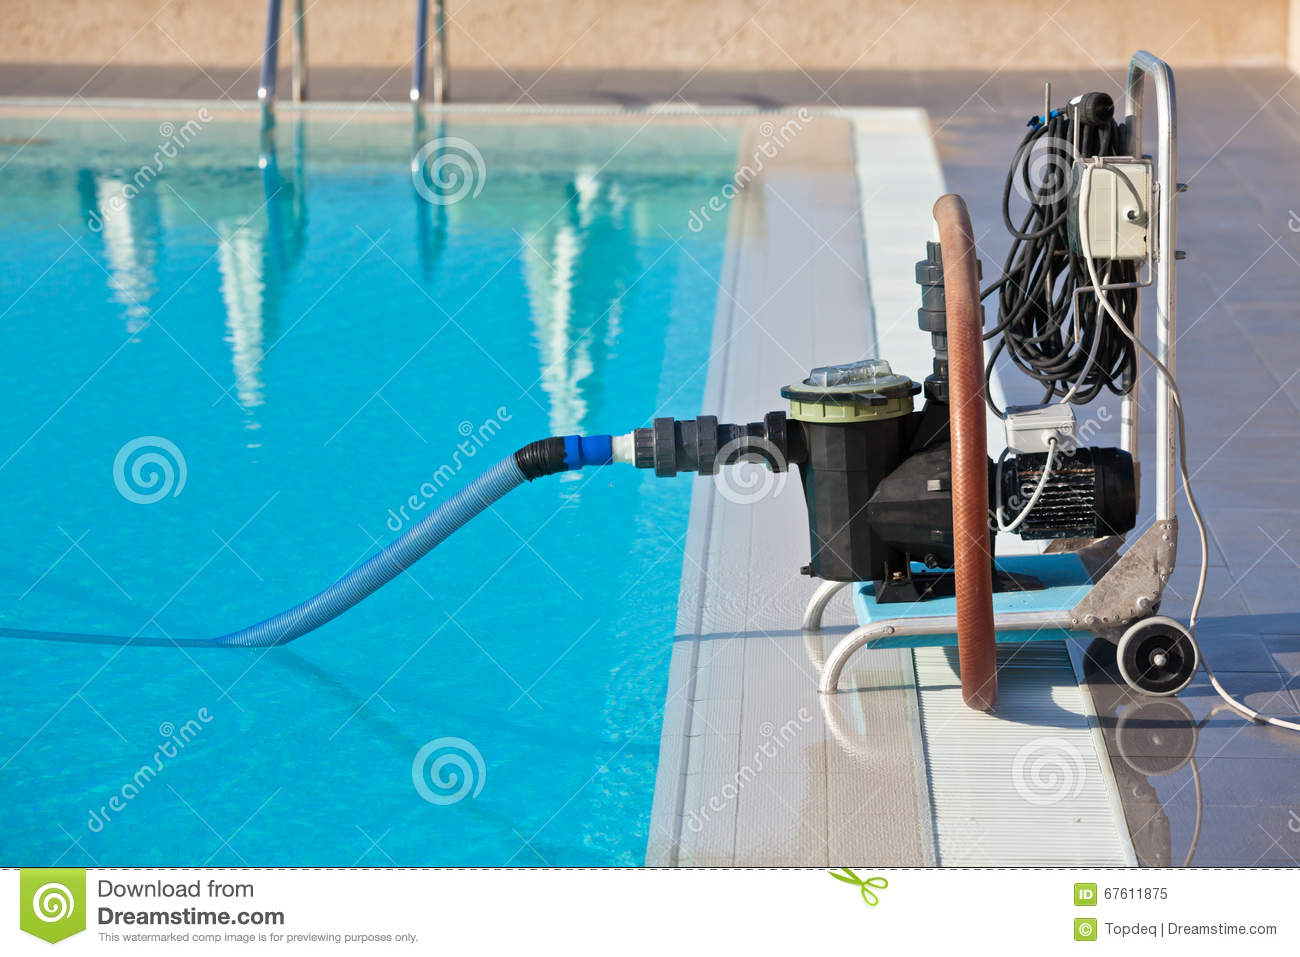 Cleaning Swimming Pool Pump : Cleaning pump working with a swimming pool stock image